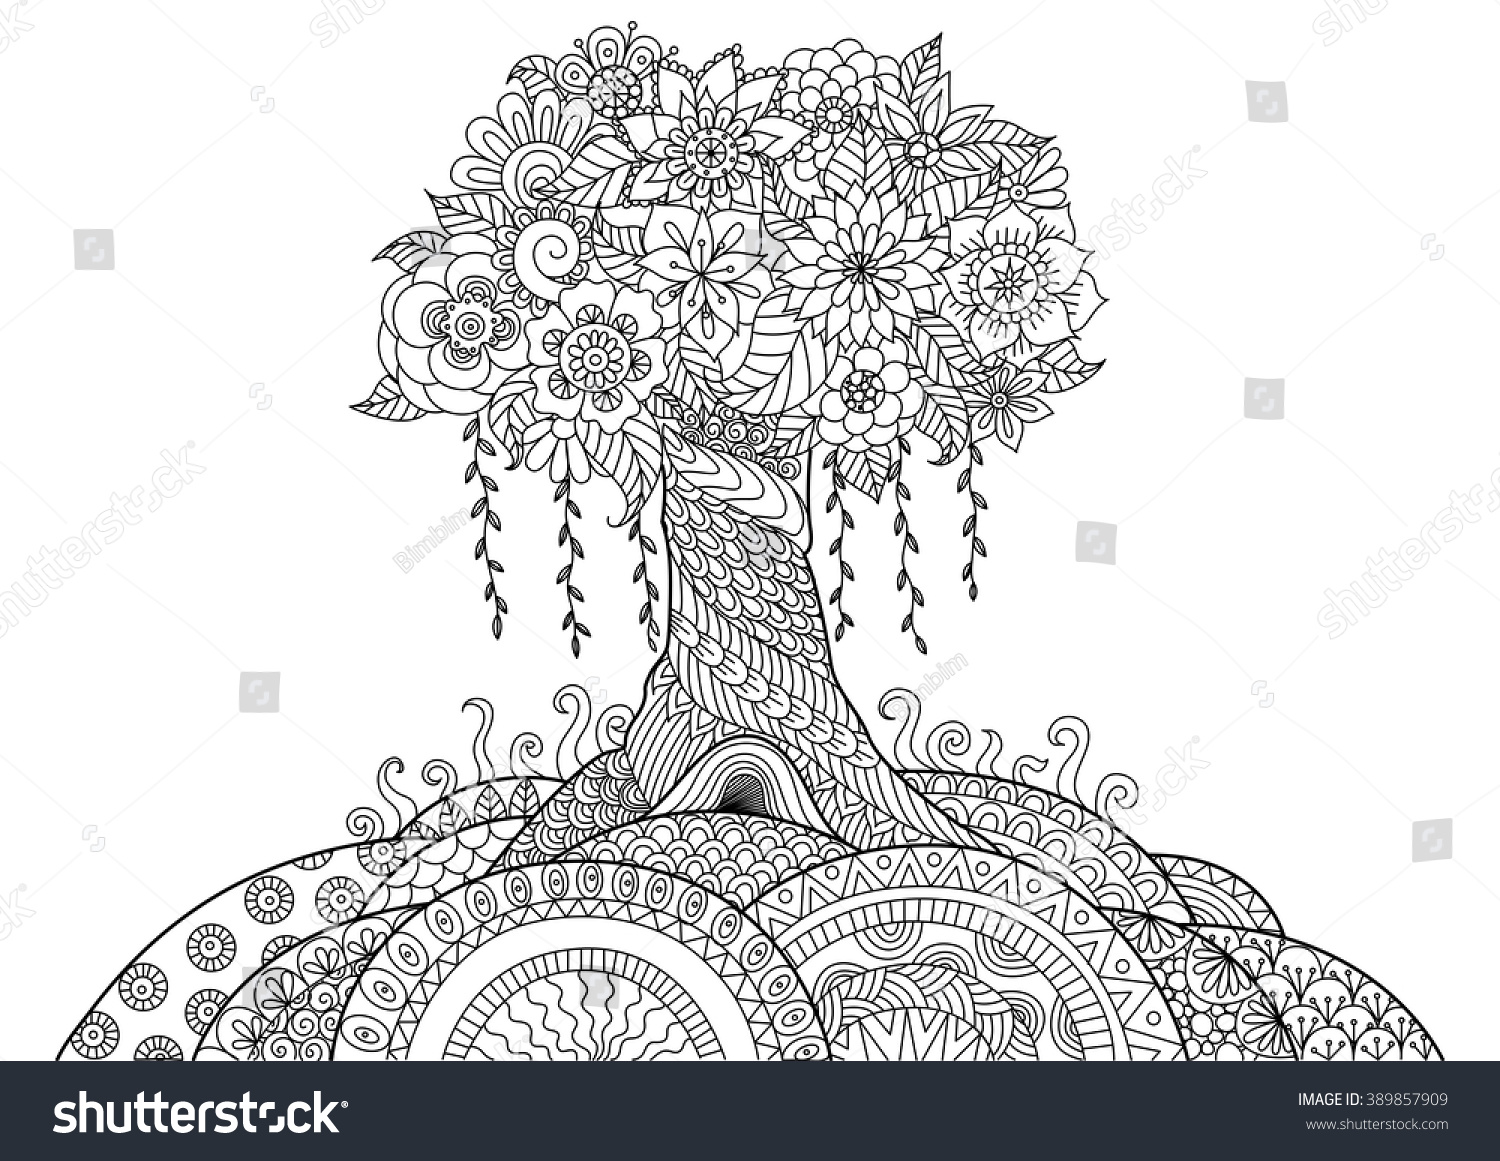 Tree Line Art Design : Abstract tree on hill line art stock vector